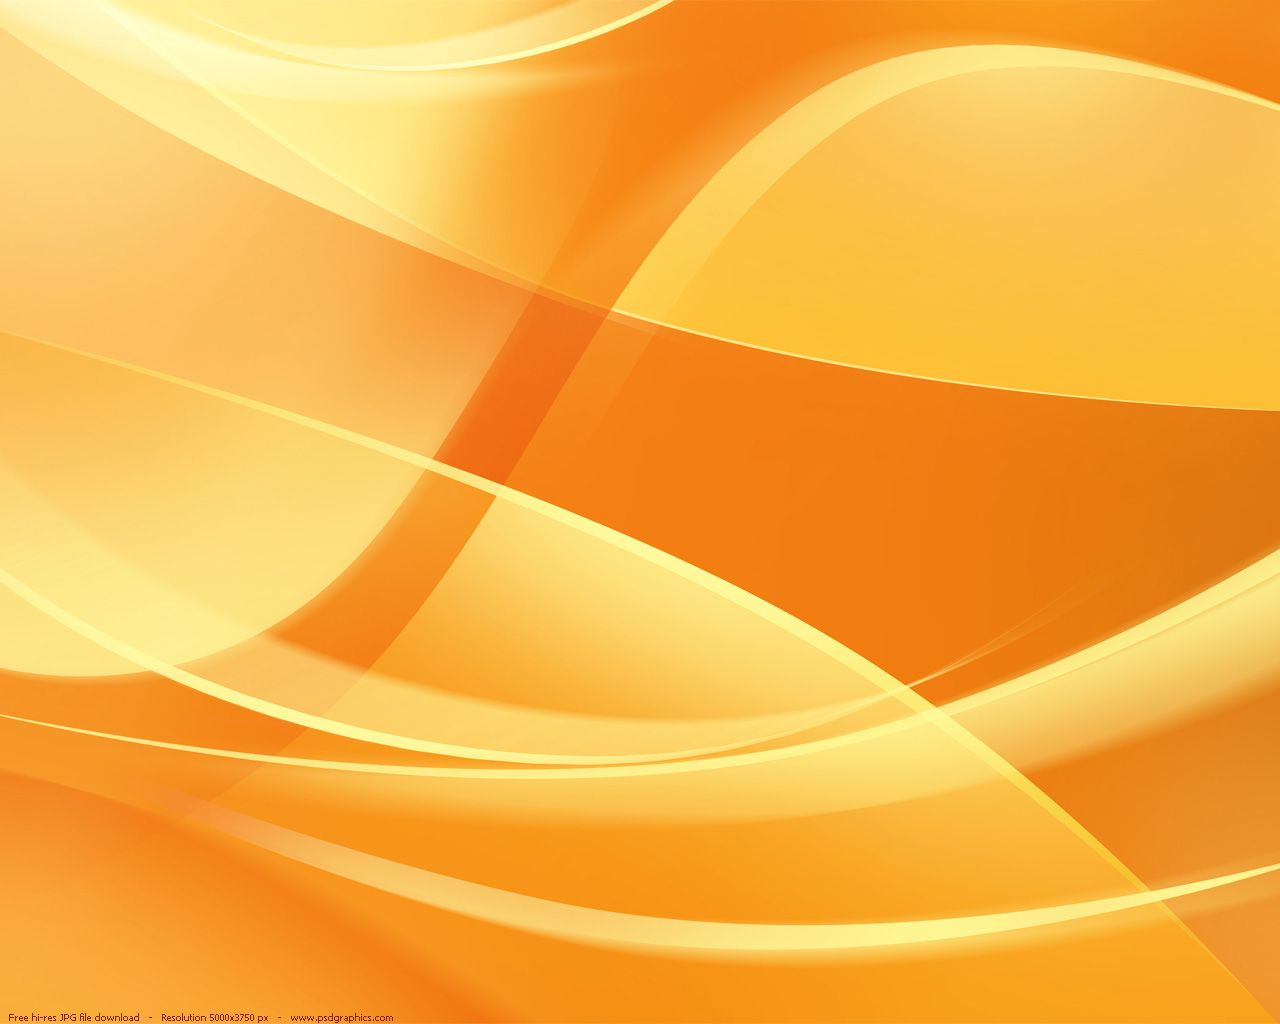 Orange Abstract Orange Backgrounds Psdgraphics In 2019